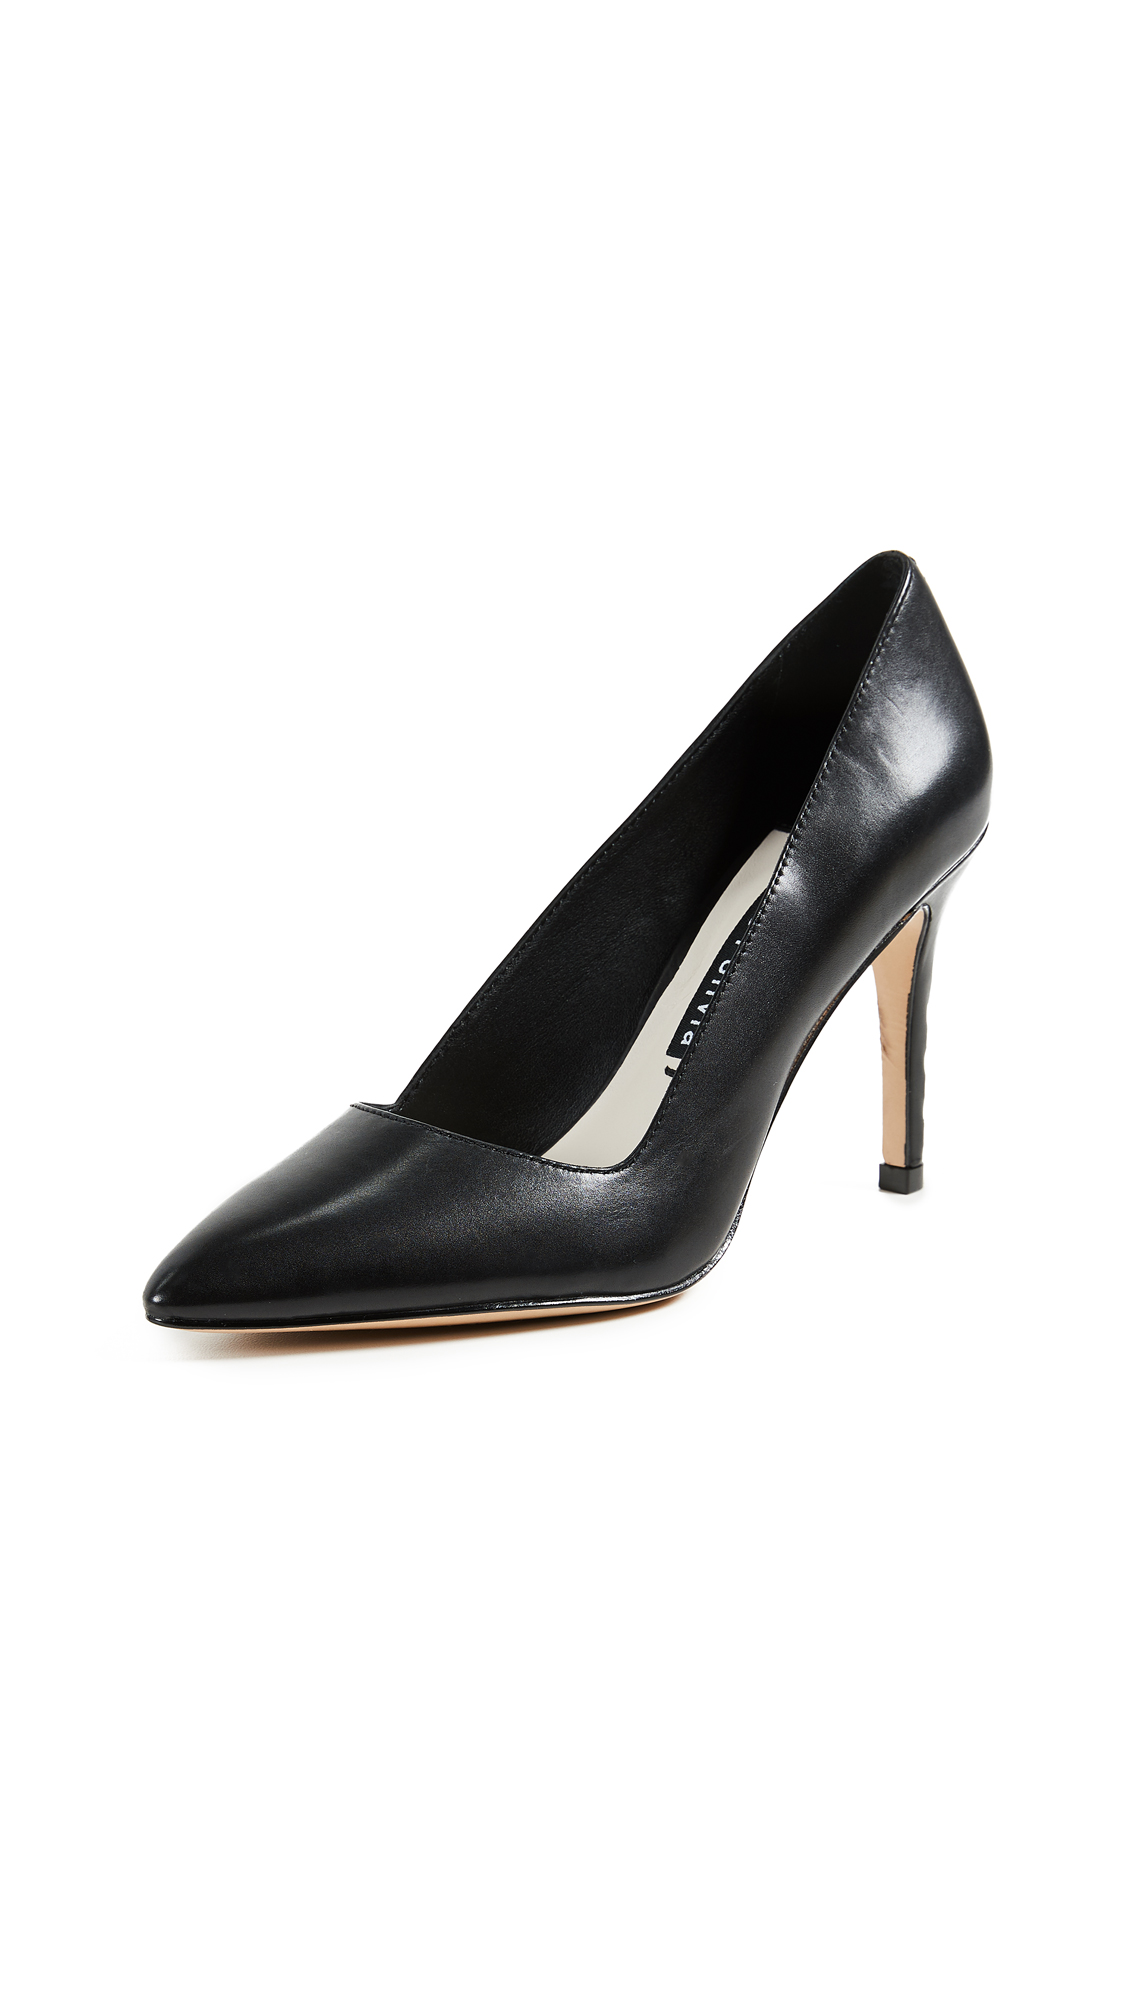 alice + olivia Dina Point Toe Pumps - Black